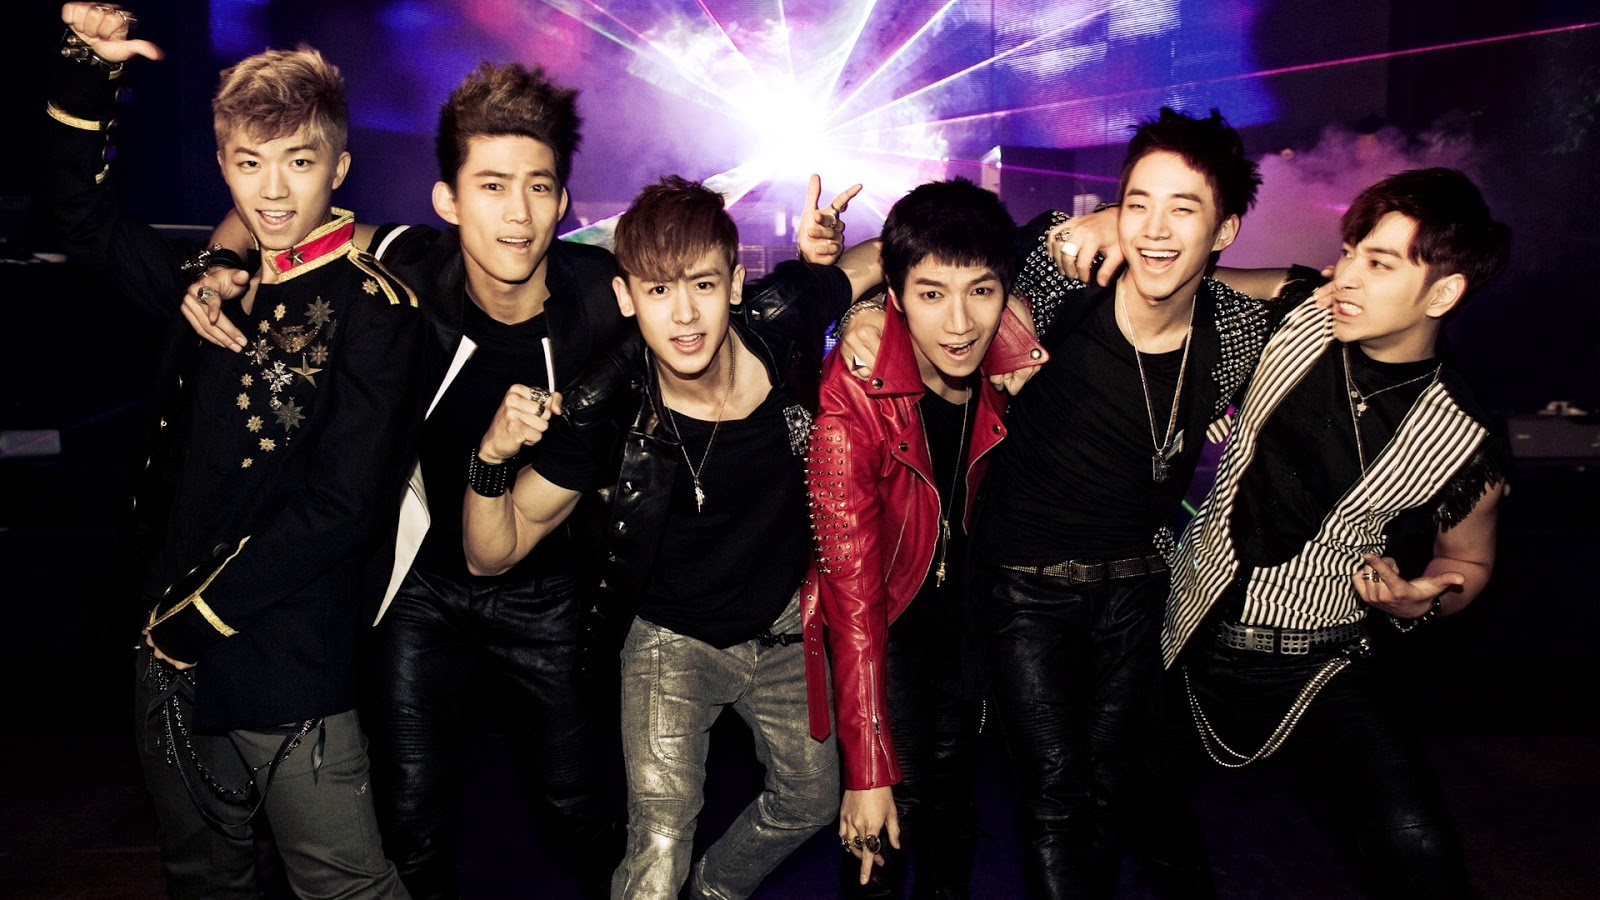 enlarge 2pm 투피엠 wallpaper hd 2pm 투피엠 wallpaper hd 2